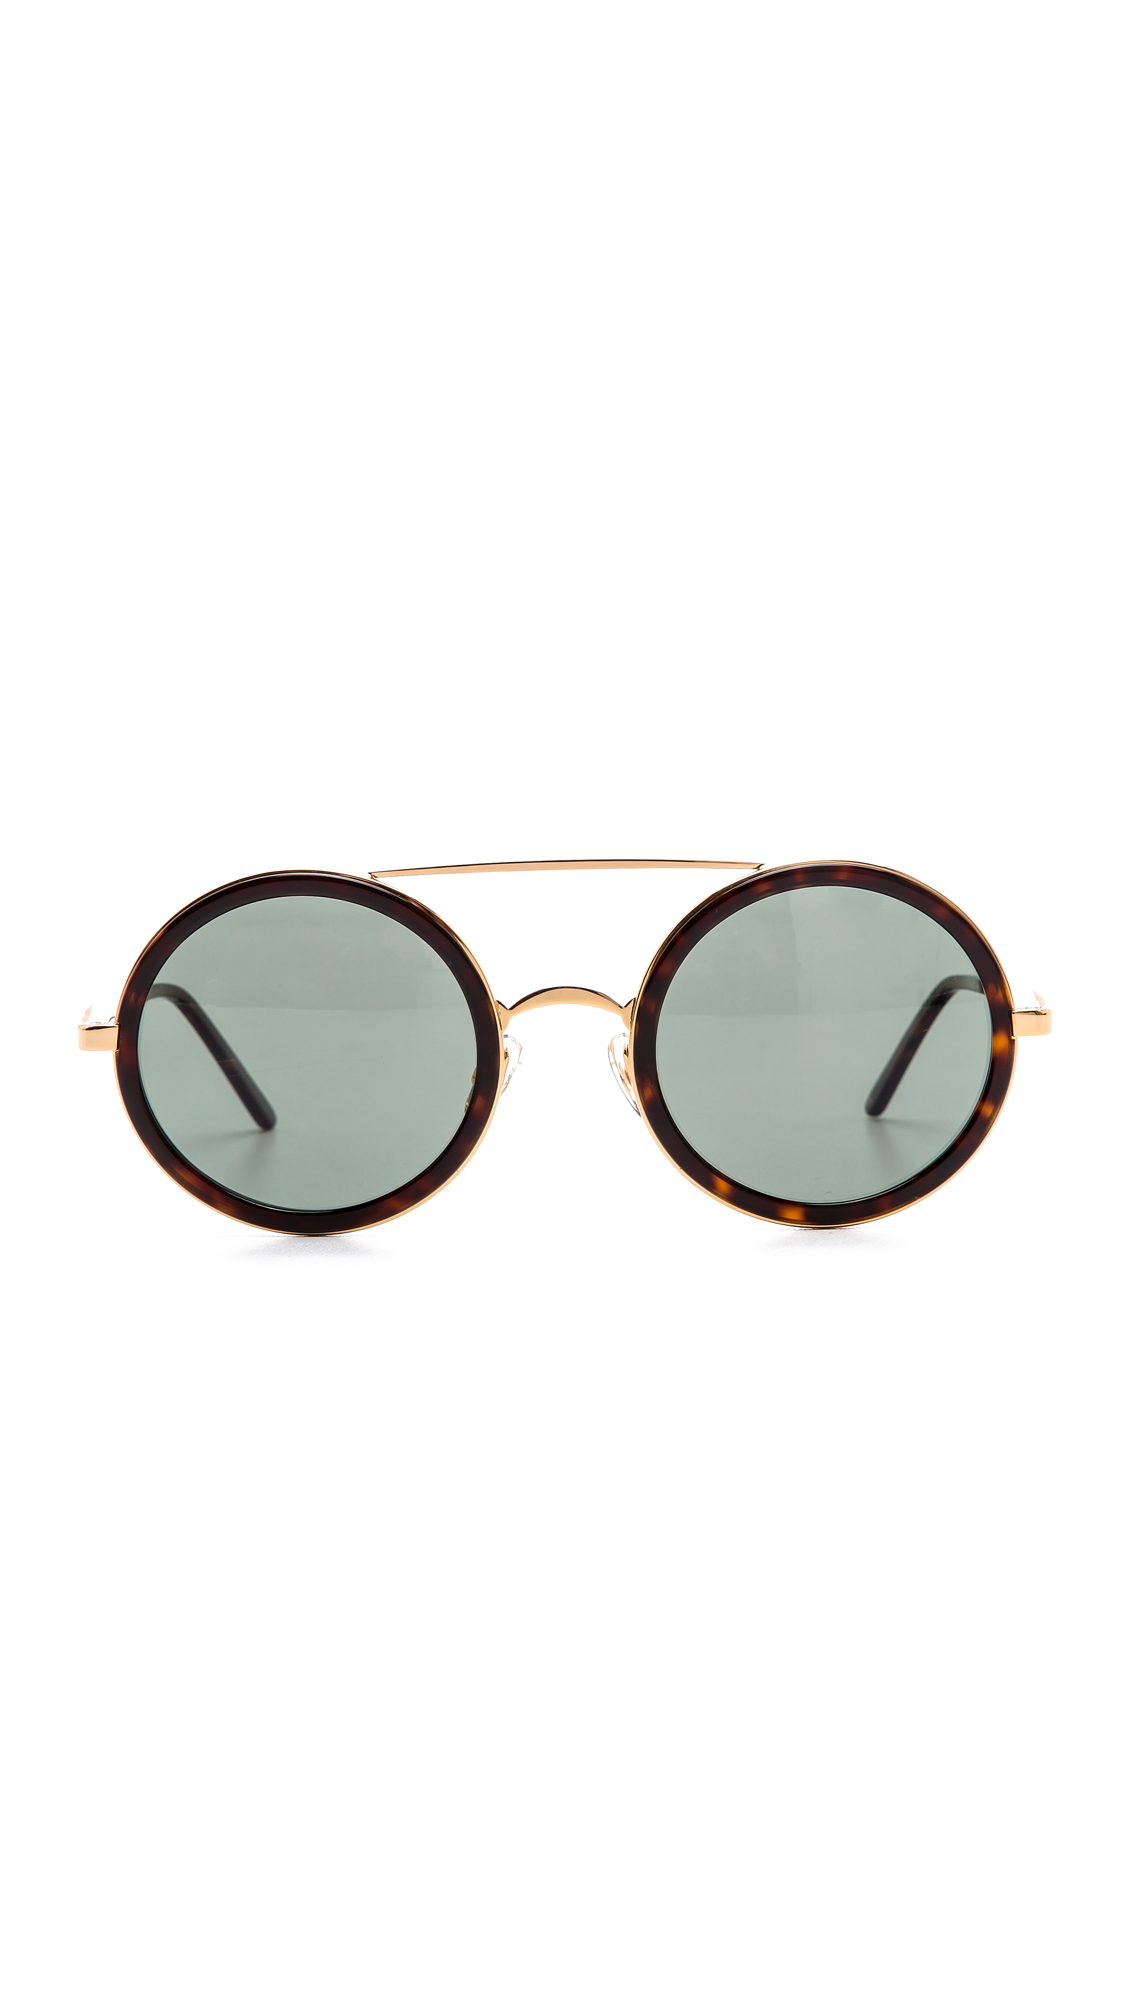 b317380b67 Wildfox Sunglasses